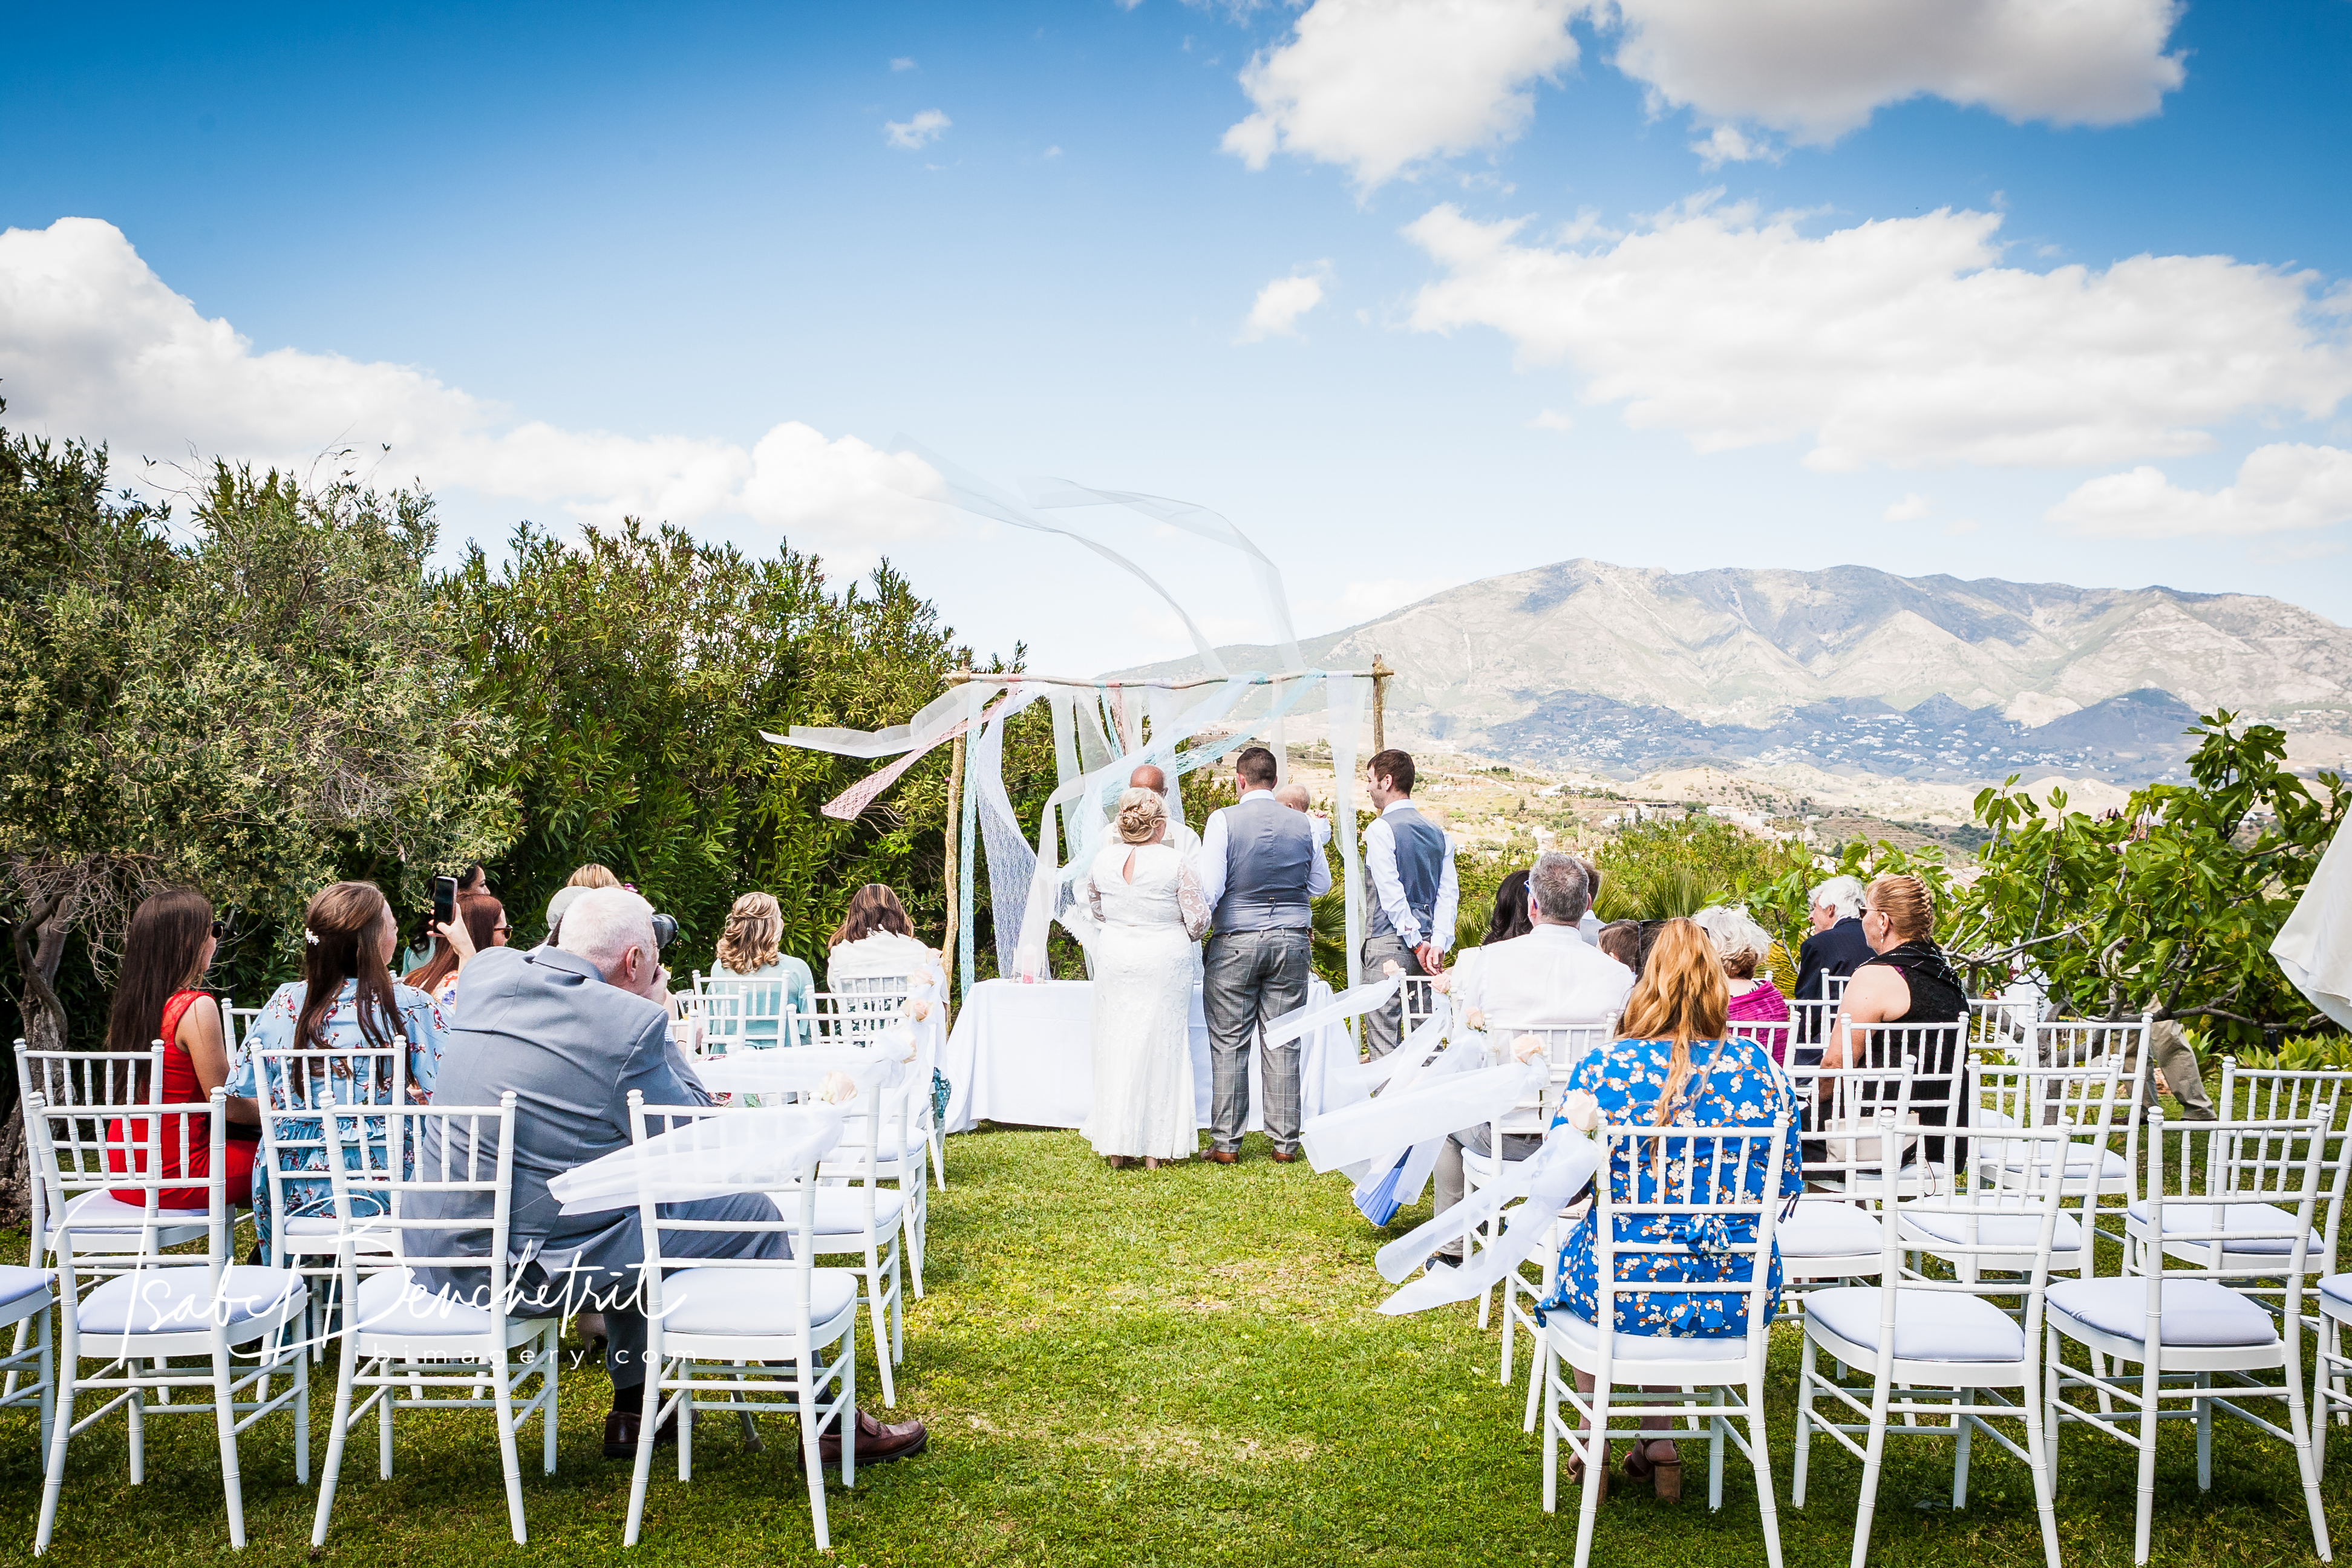 The wedding ceremony in the Hacienda gardens amidst a stunning mountain backdrop